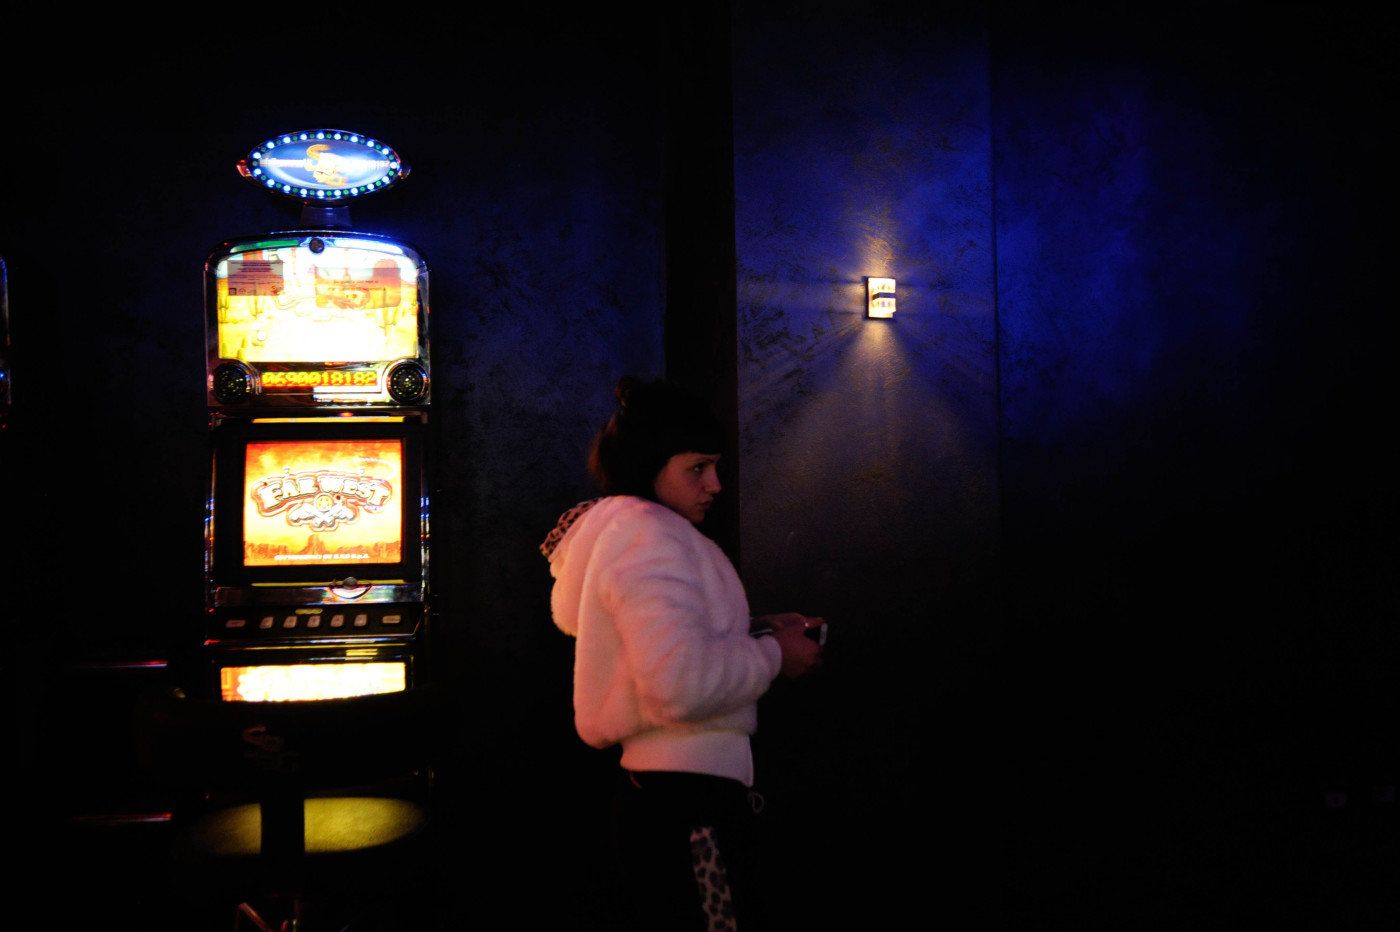 ragazza con slot machine